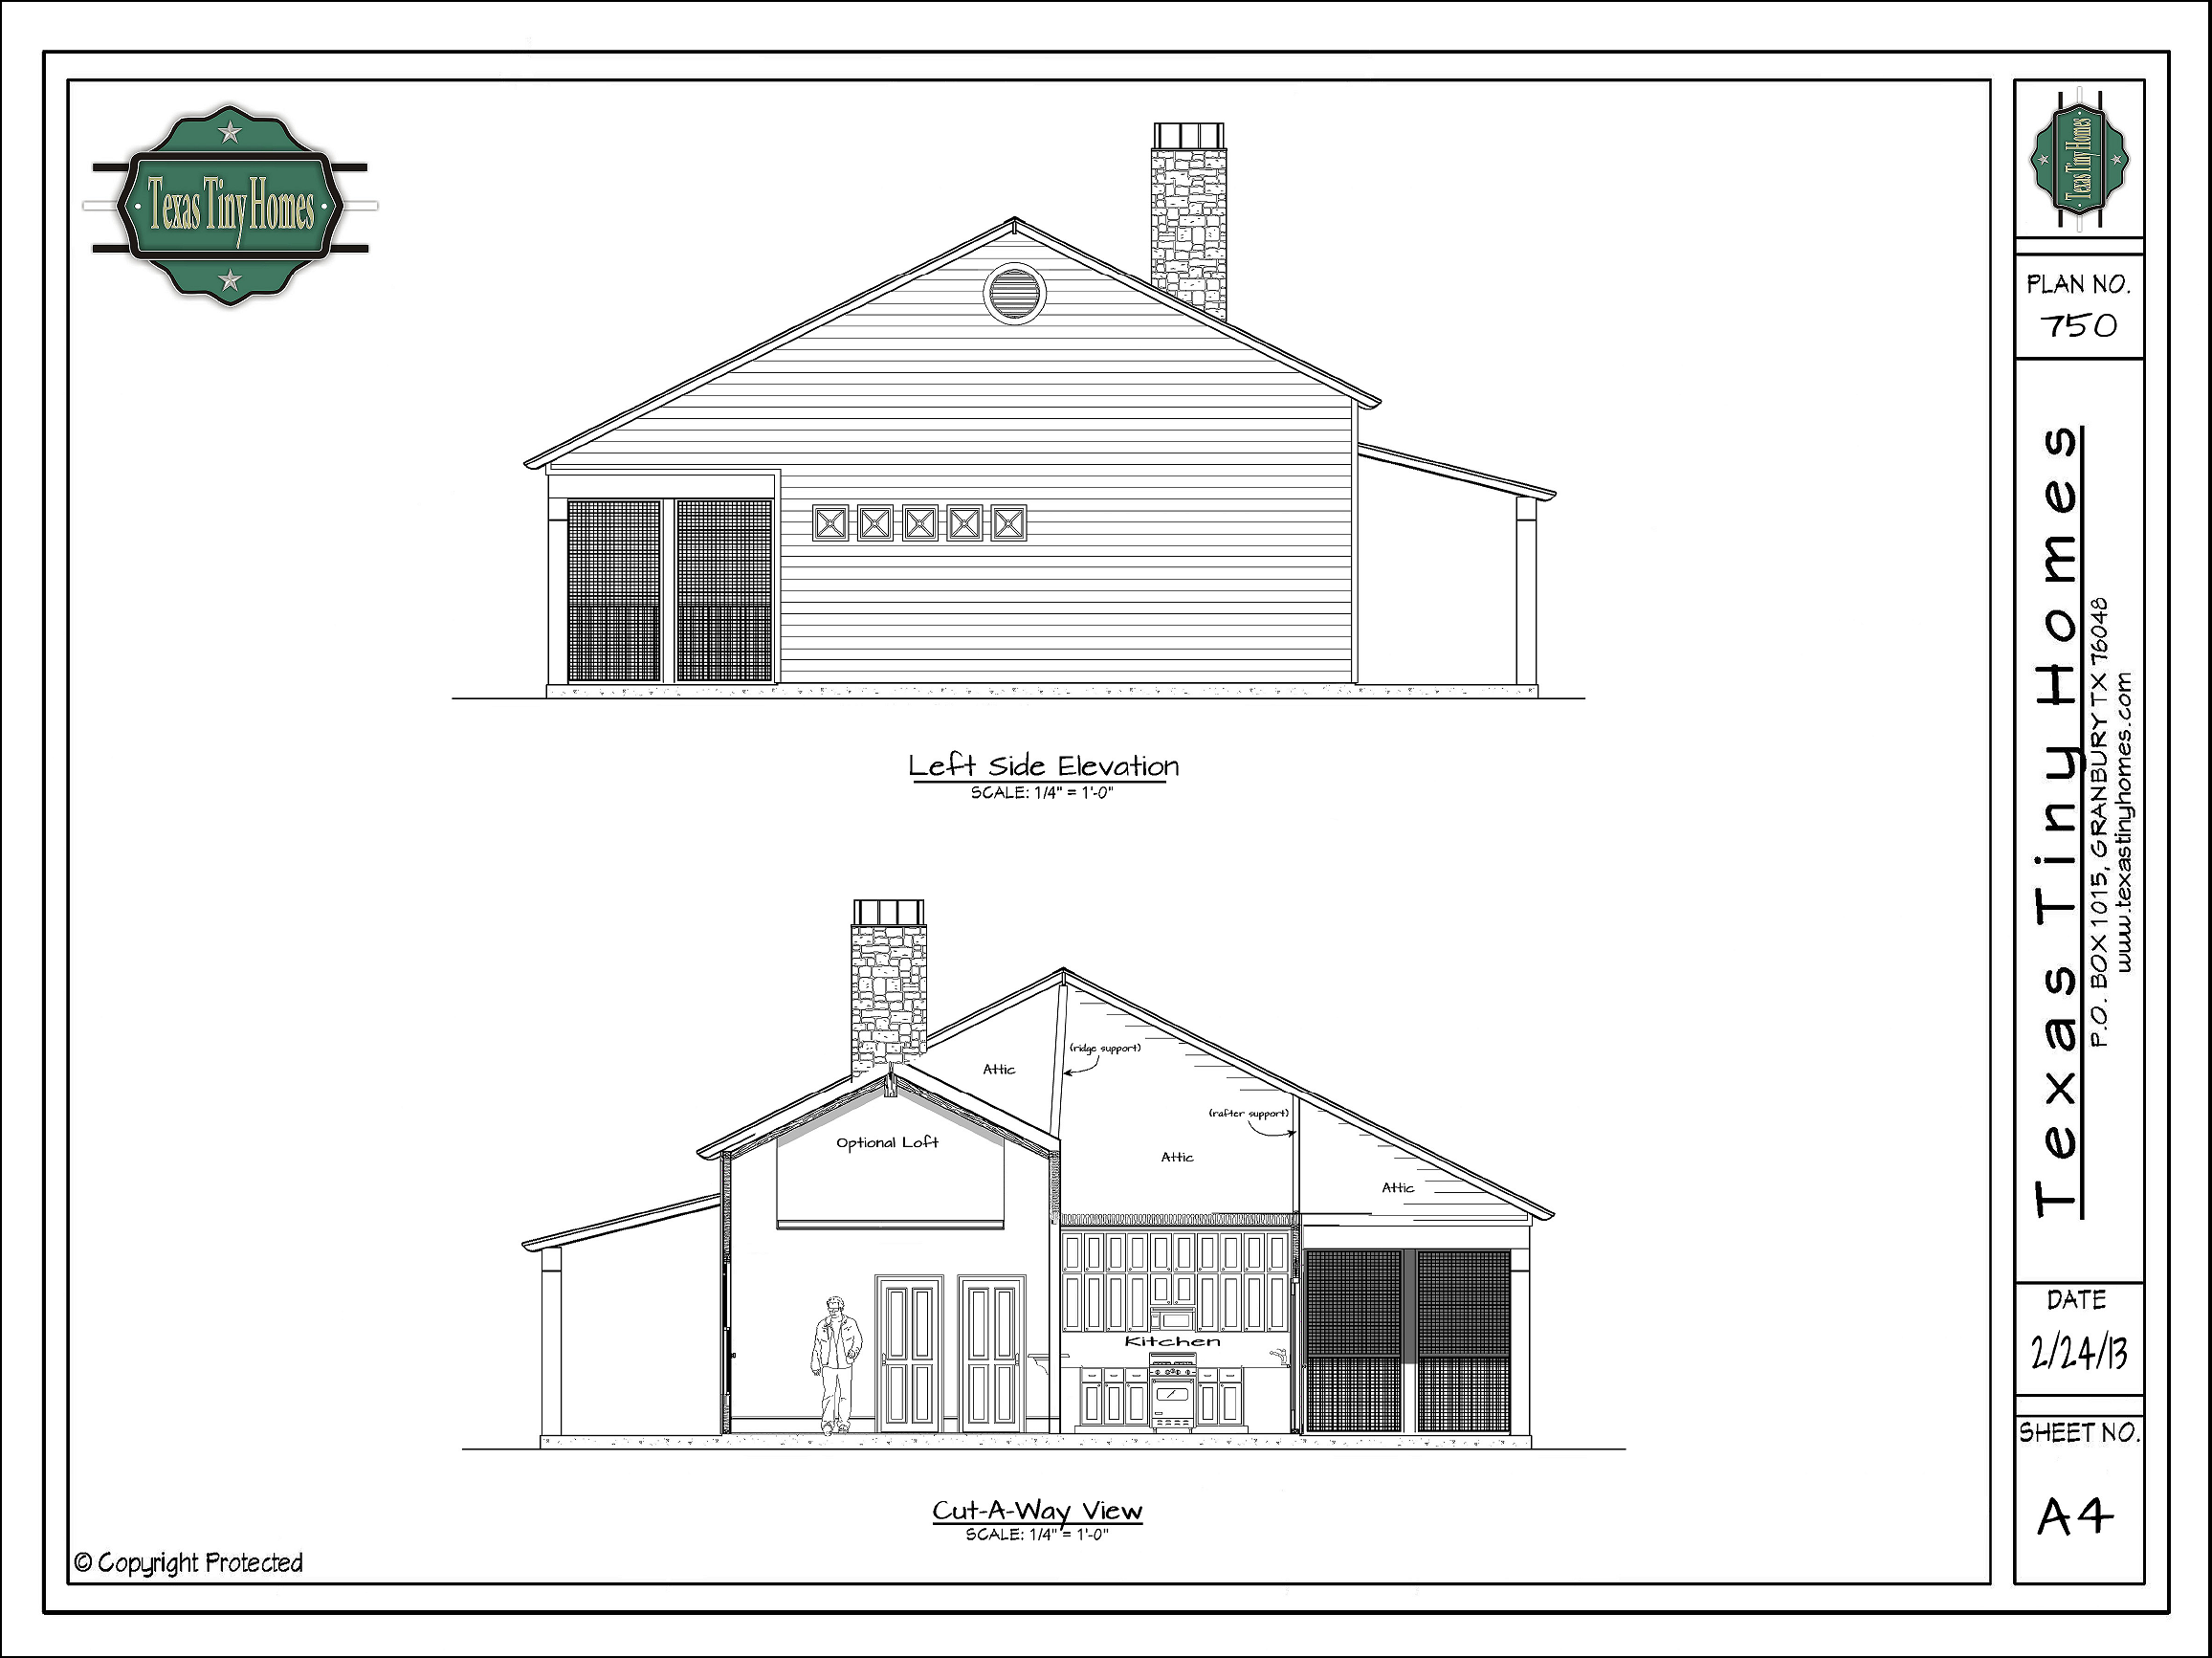 Texas tiny homes plan 750 for Home builders floor plans